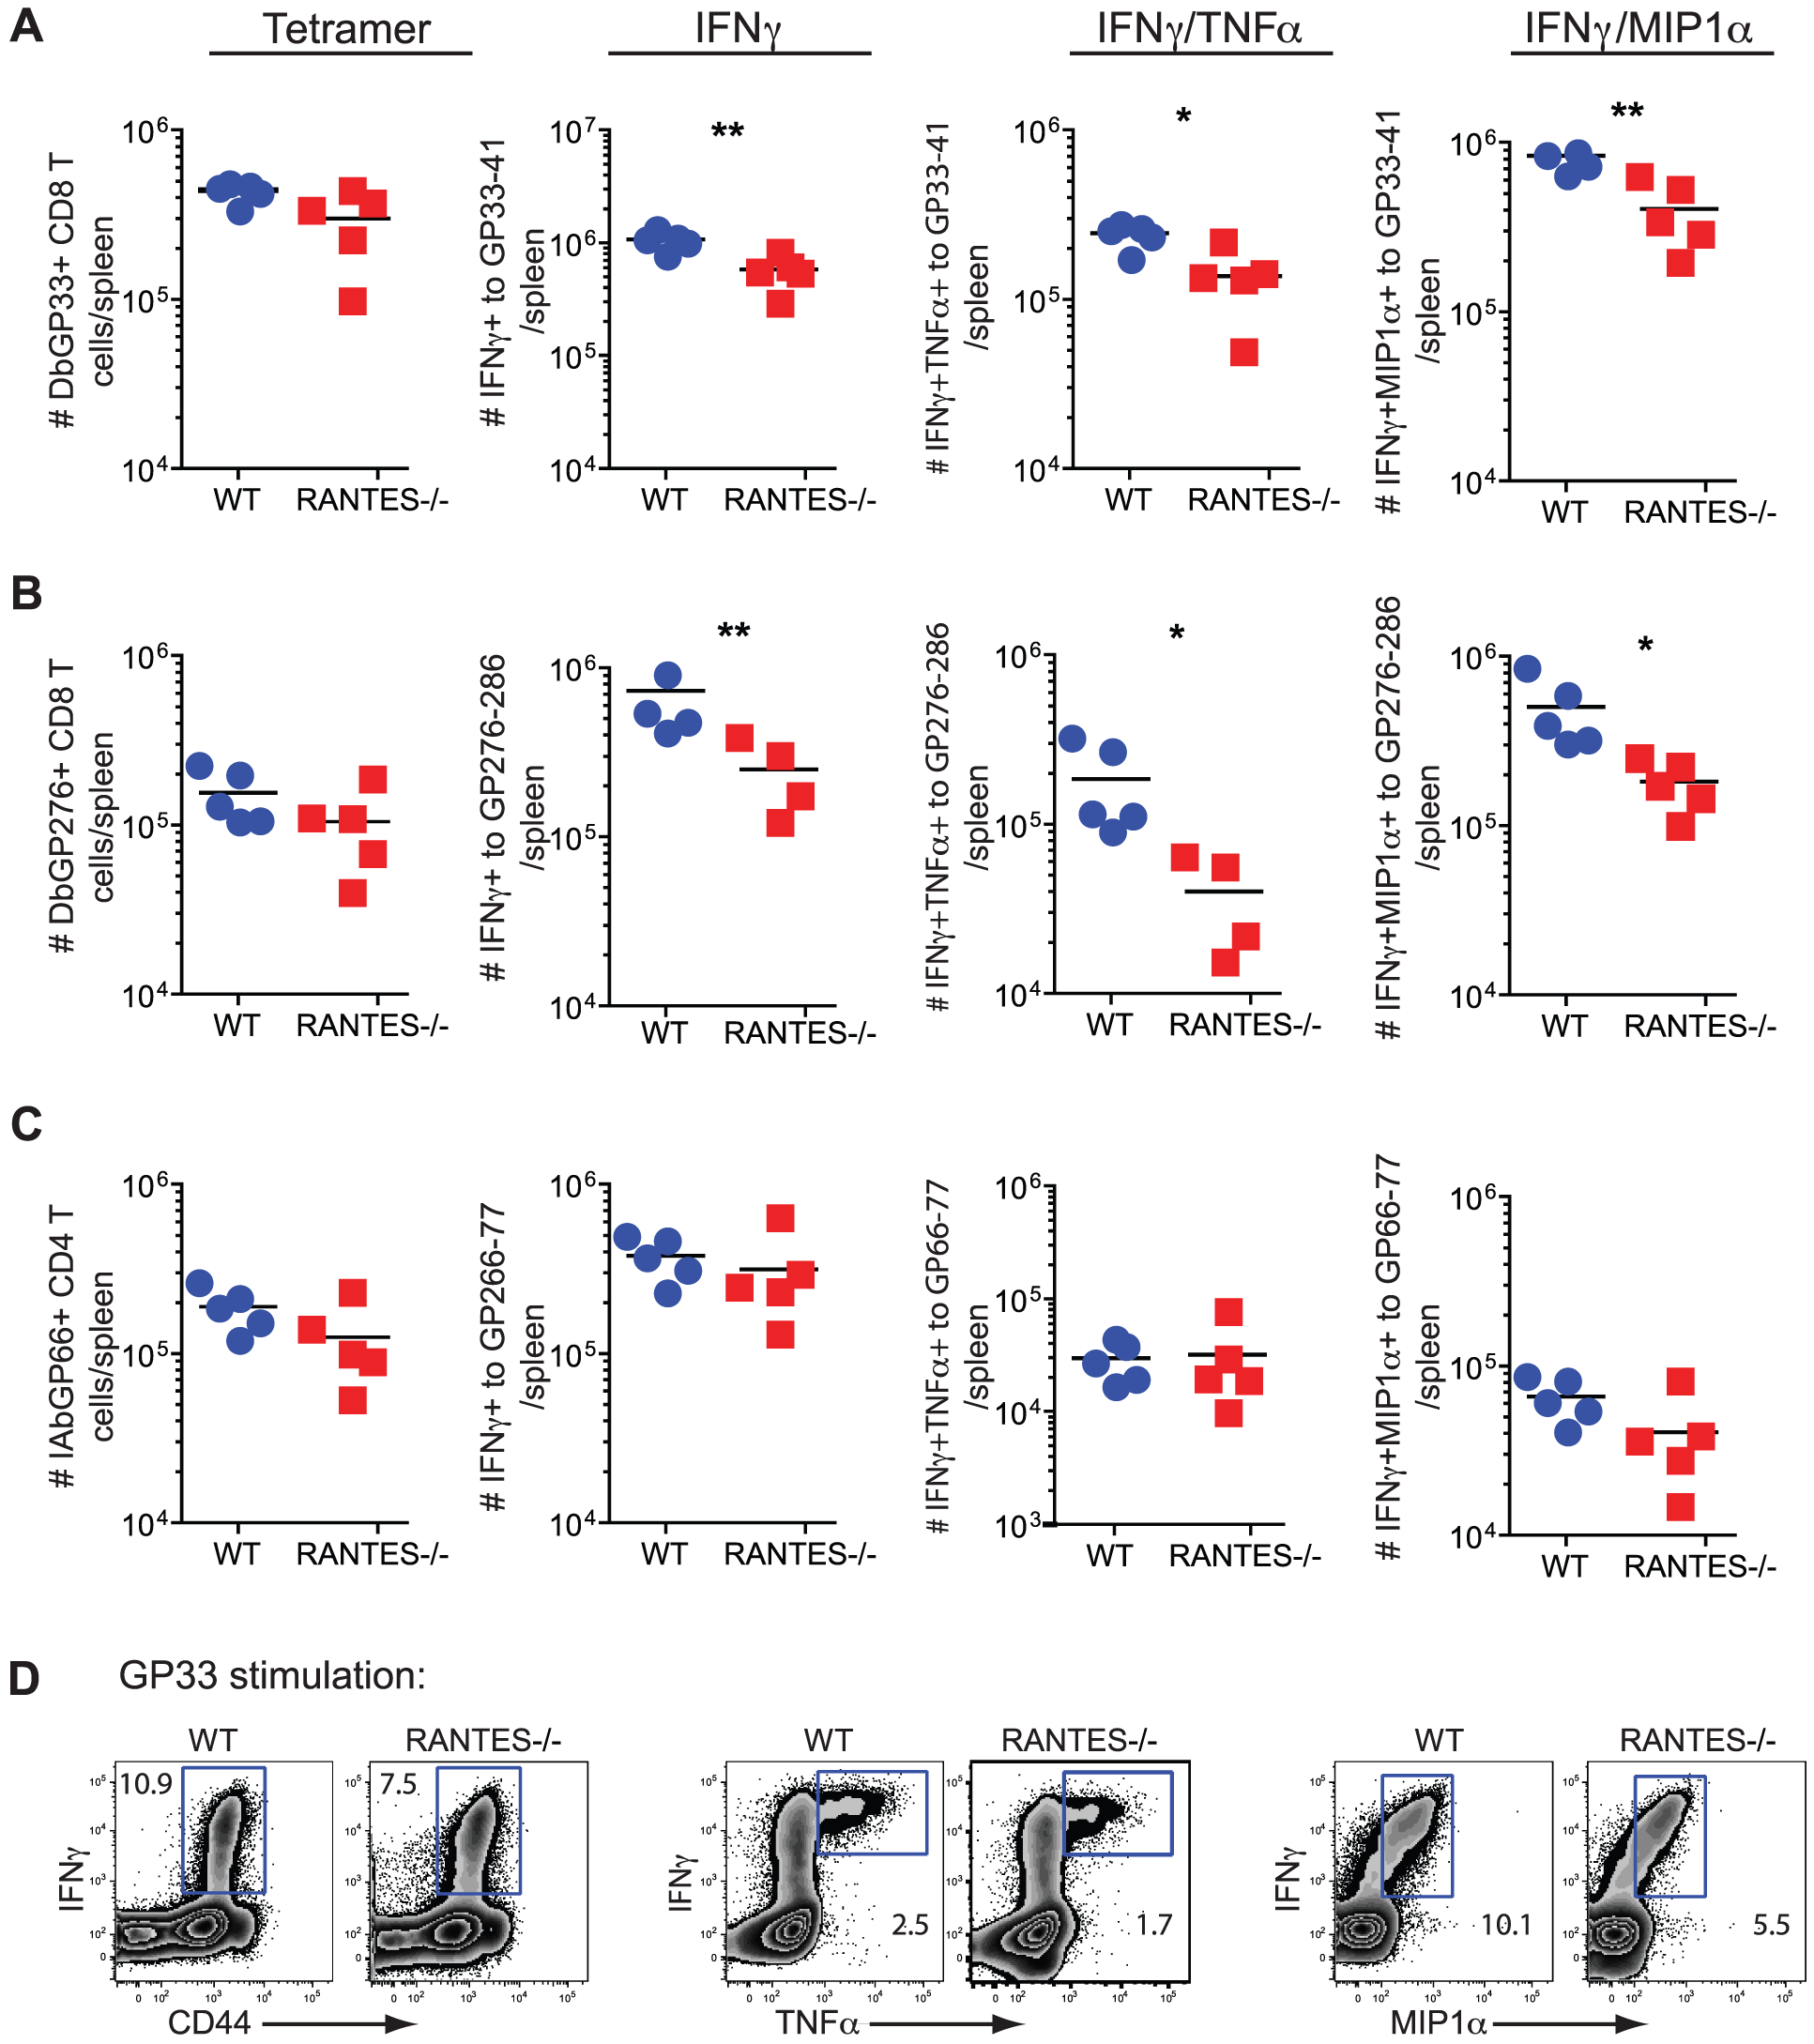 The primary CD8 T cell cytokine response is diminished in the absence of RANTES at one week after clone 13 infection.